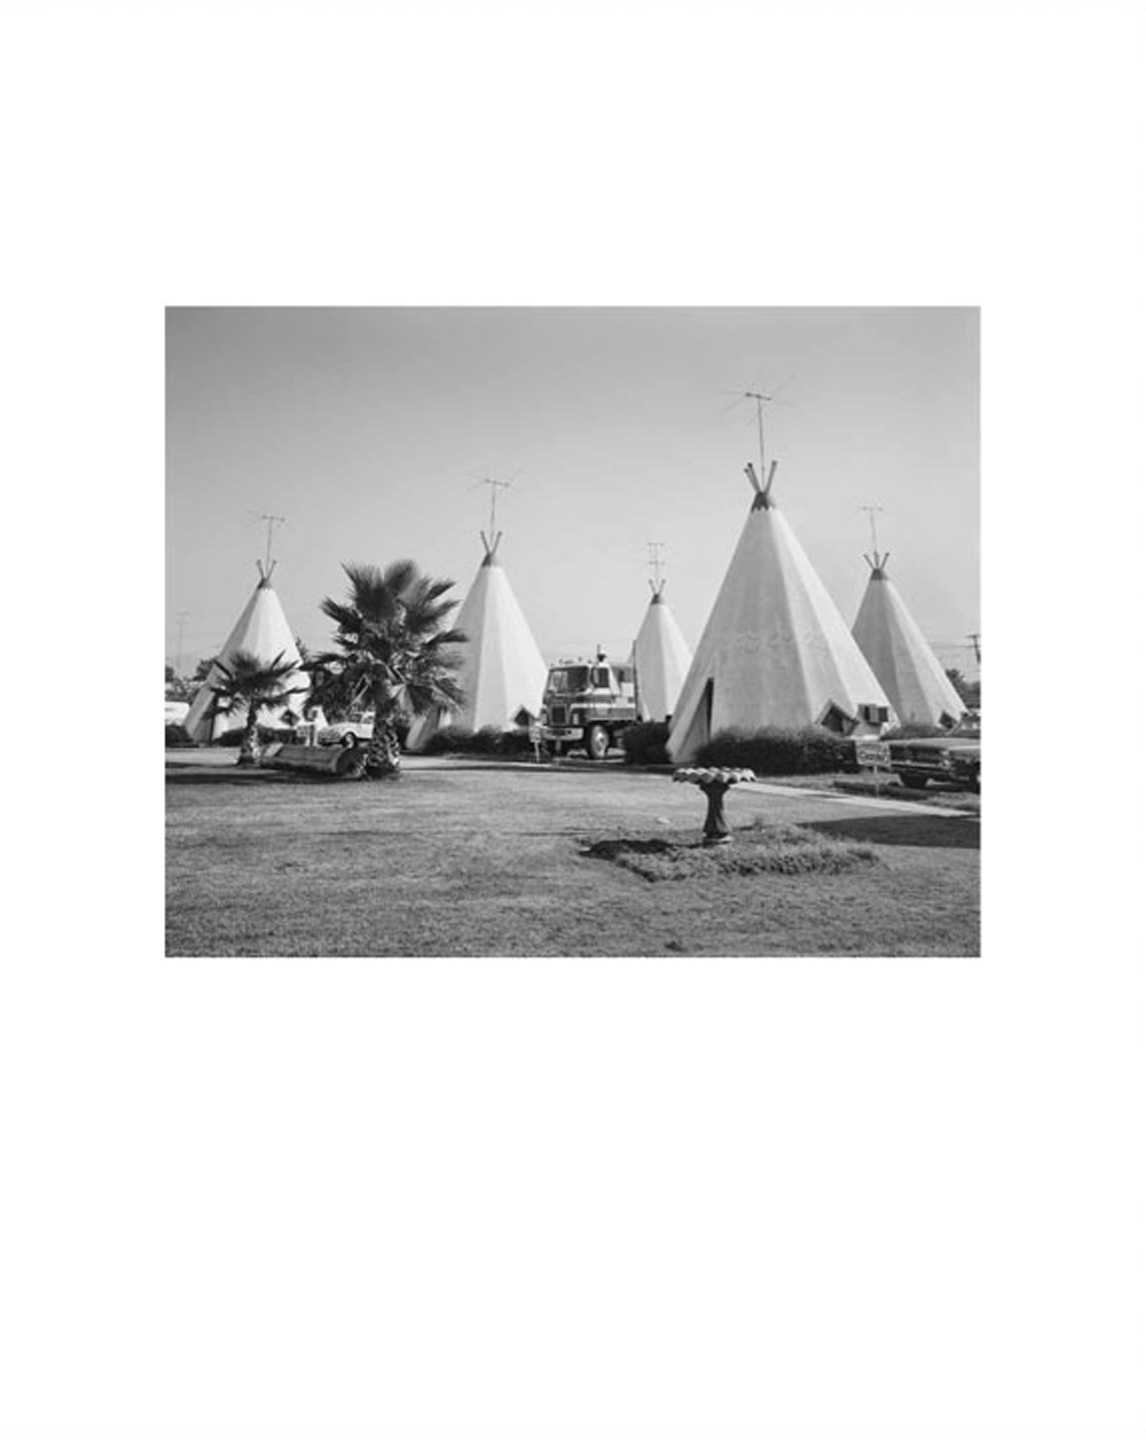 """NZ Library #1: John Schott: Route 66, Special Limited Edition (with Gelatin Silver Contact Print """"Untitled"""" from the Series """"Route 66 Motels,"""" El Pueblo Court Motel Office with Pay Telephone) (NZ Library - Set One, Volume Six)"""